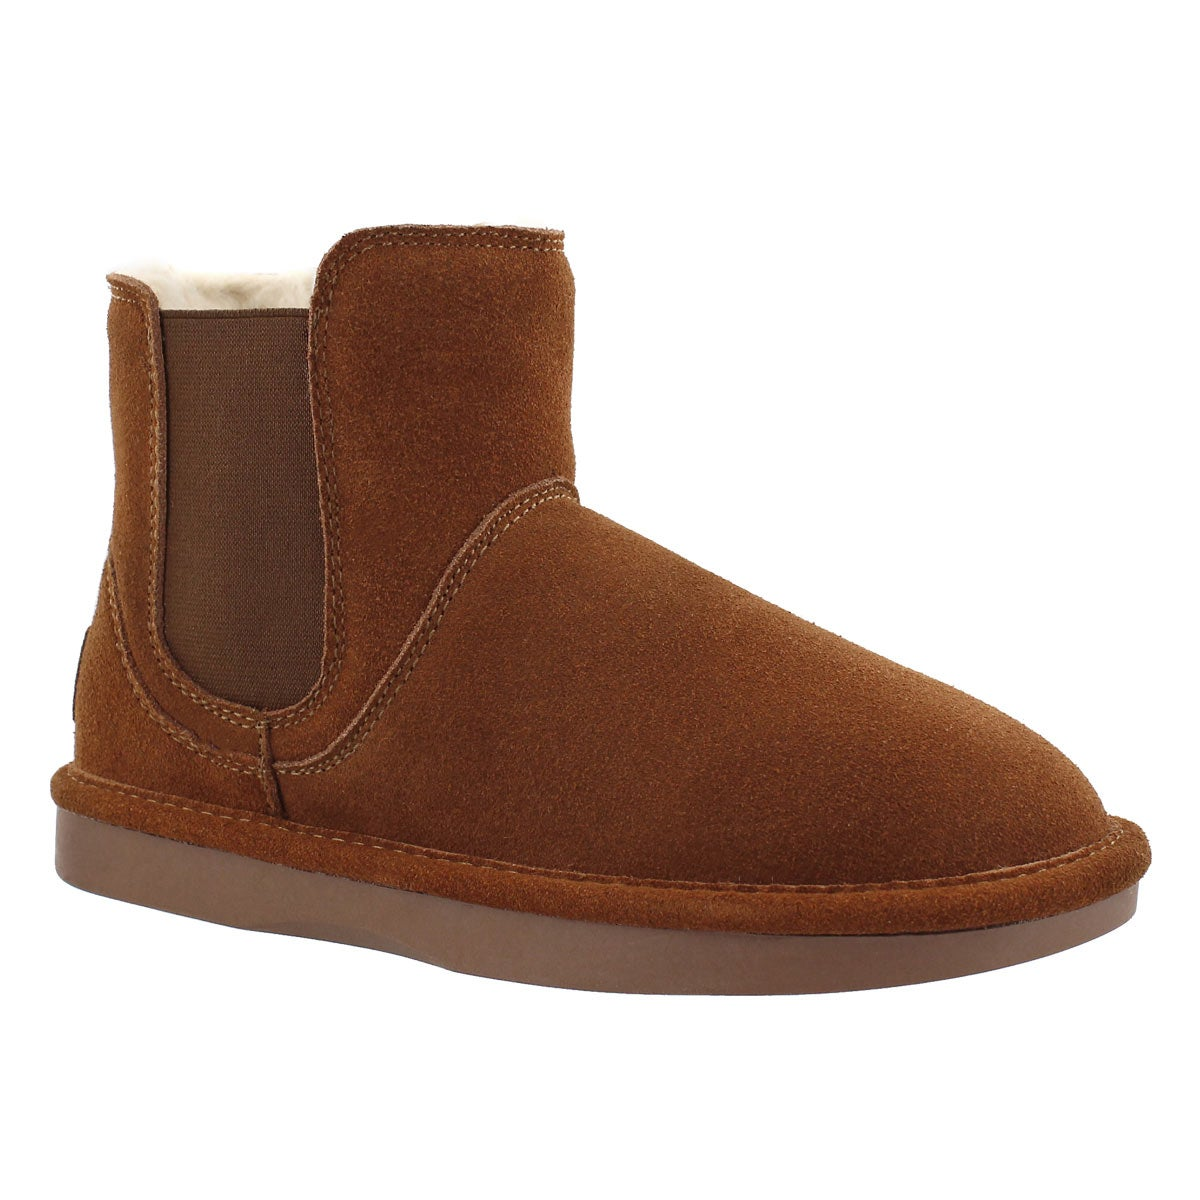 softmoc s smocs 5 spice chelsea suede boots